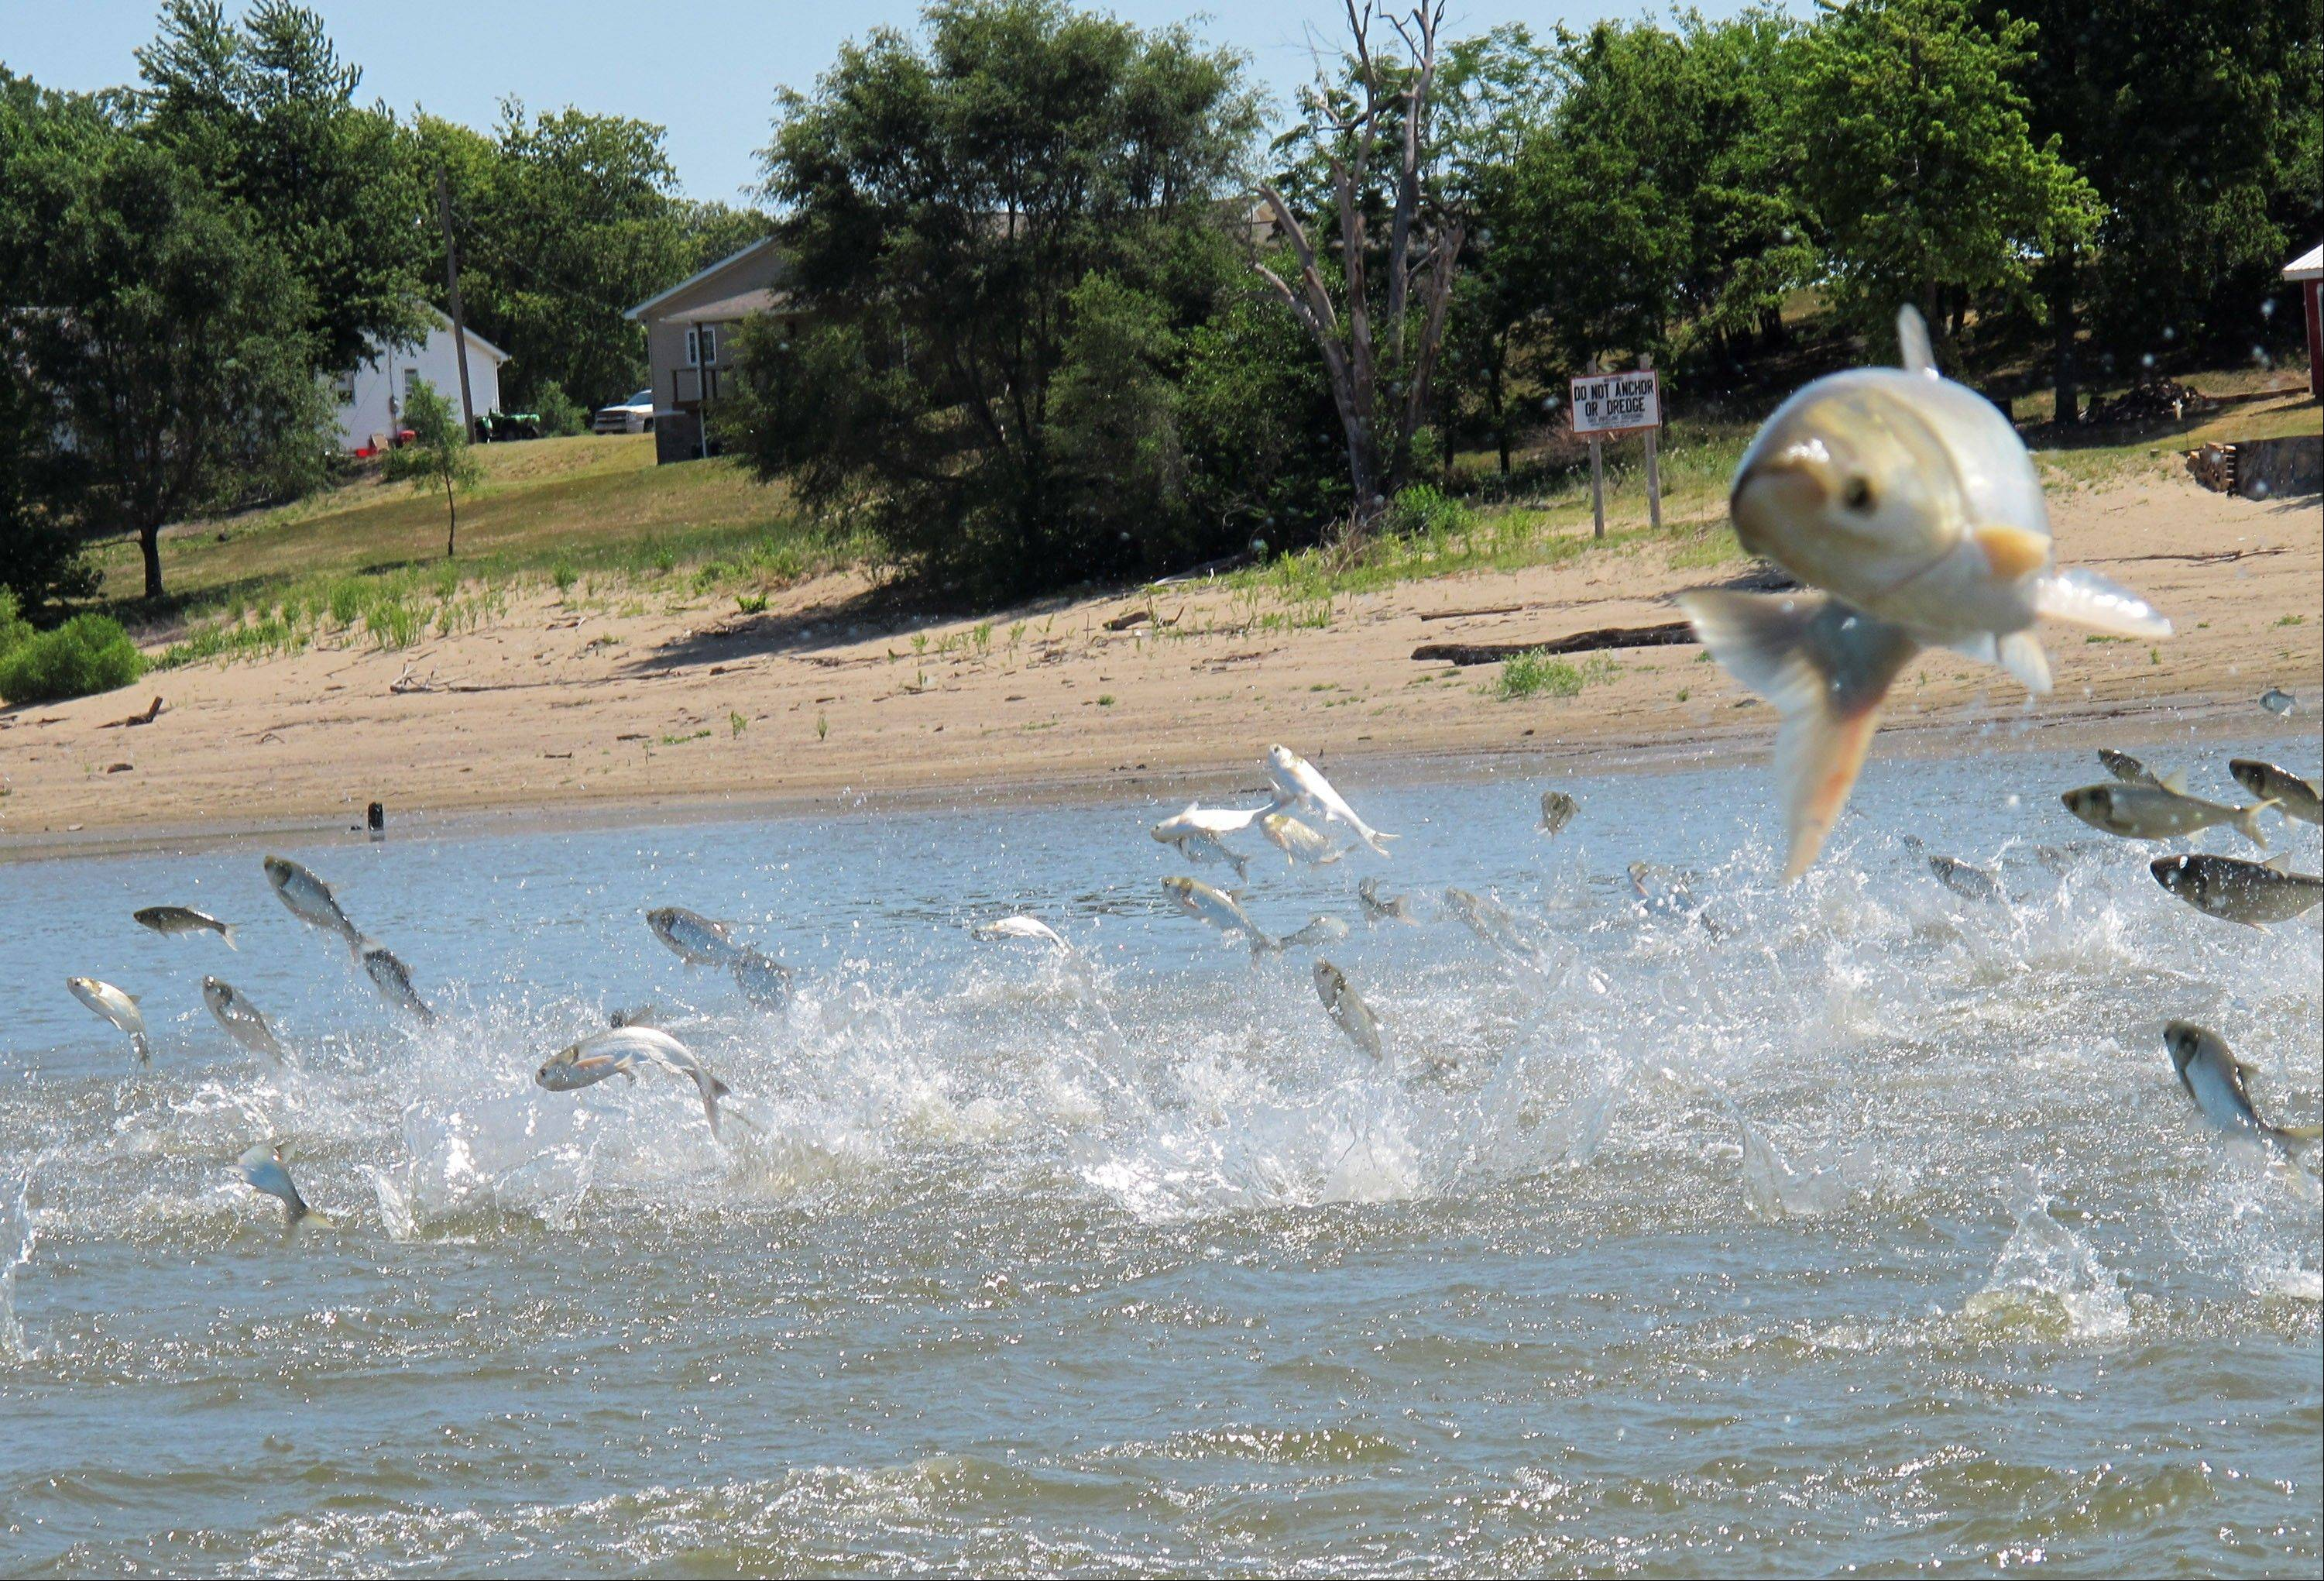 In this June 13, 2012, photo an Asian carp, jolted by an electric current from a research boat, jumps from the Illinois River near Havana, Ill., during a study on the fish�s population. The U.S. Army Corps of Engineers released a report Monday years in the making, about options for keeping Asian carp from invading the Great Lakes. The report focuses on the Chicago Area Waterway System and its network of rivers and canals that provide a direct link between Lake Michigan and the Mississippi River.